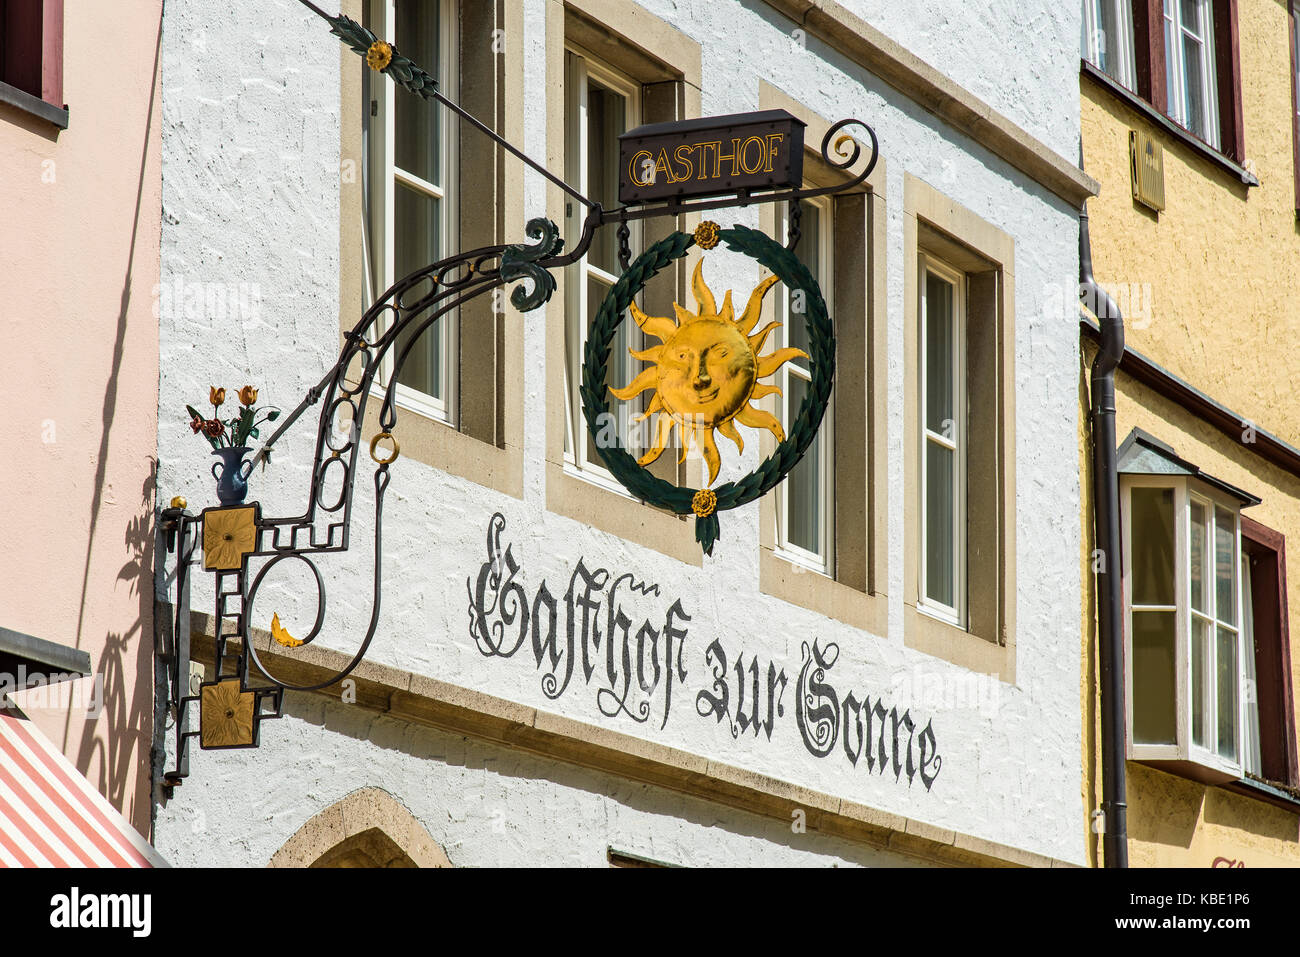 Typical wrought iron sign outside a hotel, Rothenburg ob der Tauber, Bavaria, Germany - Stock Image